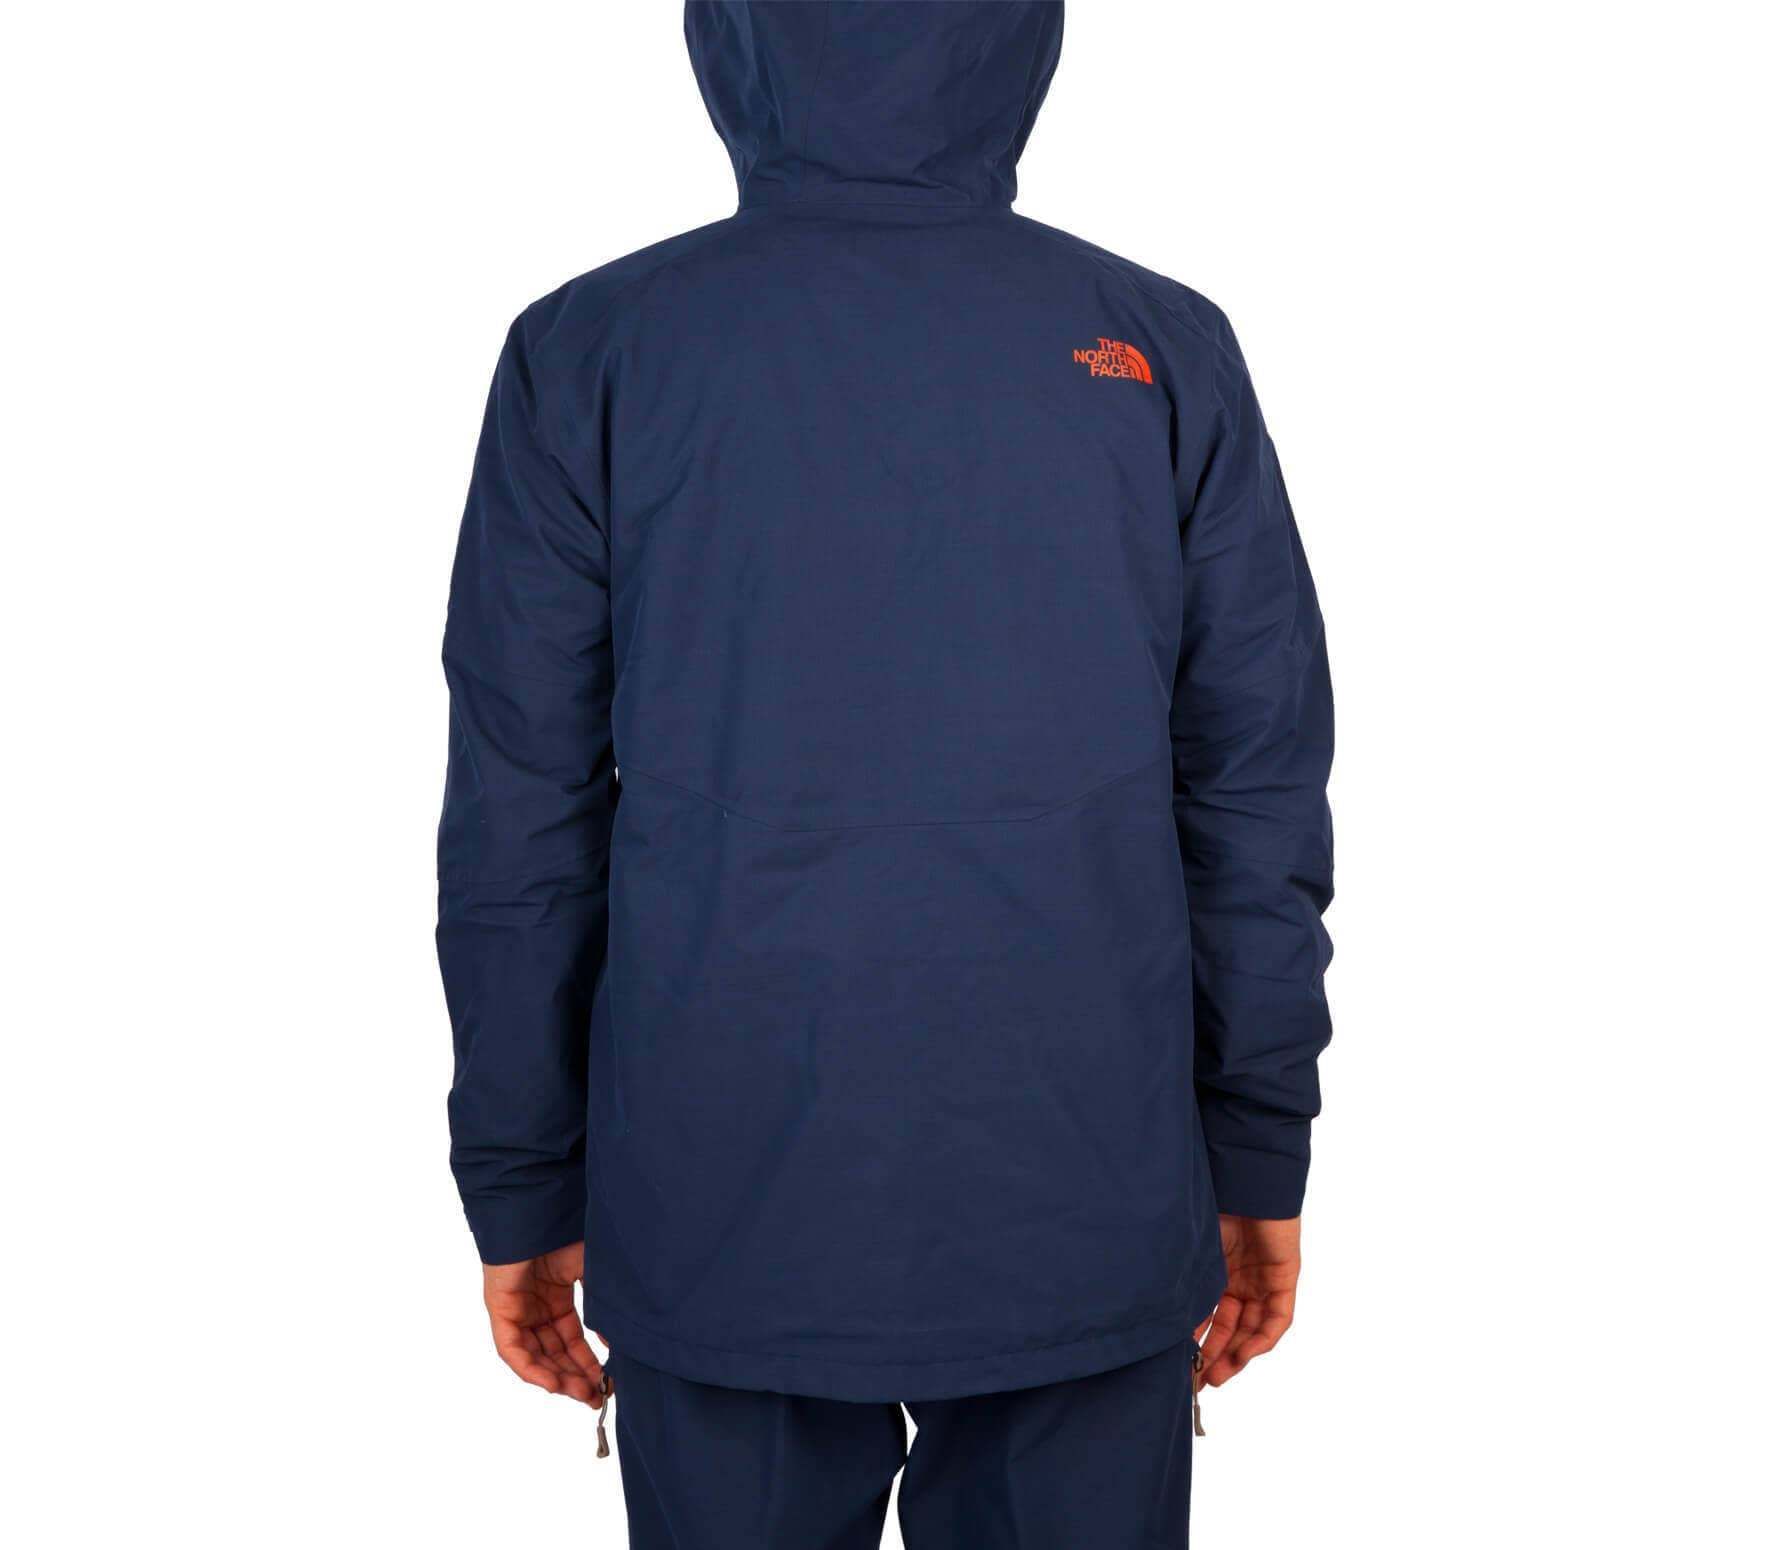 4b5099b66d78 The North Face - NFZ Insulated men s skis jacket (dark blue) - buy ...